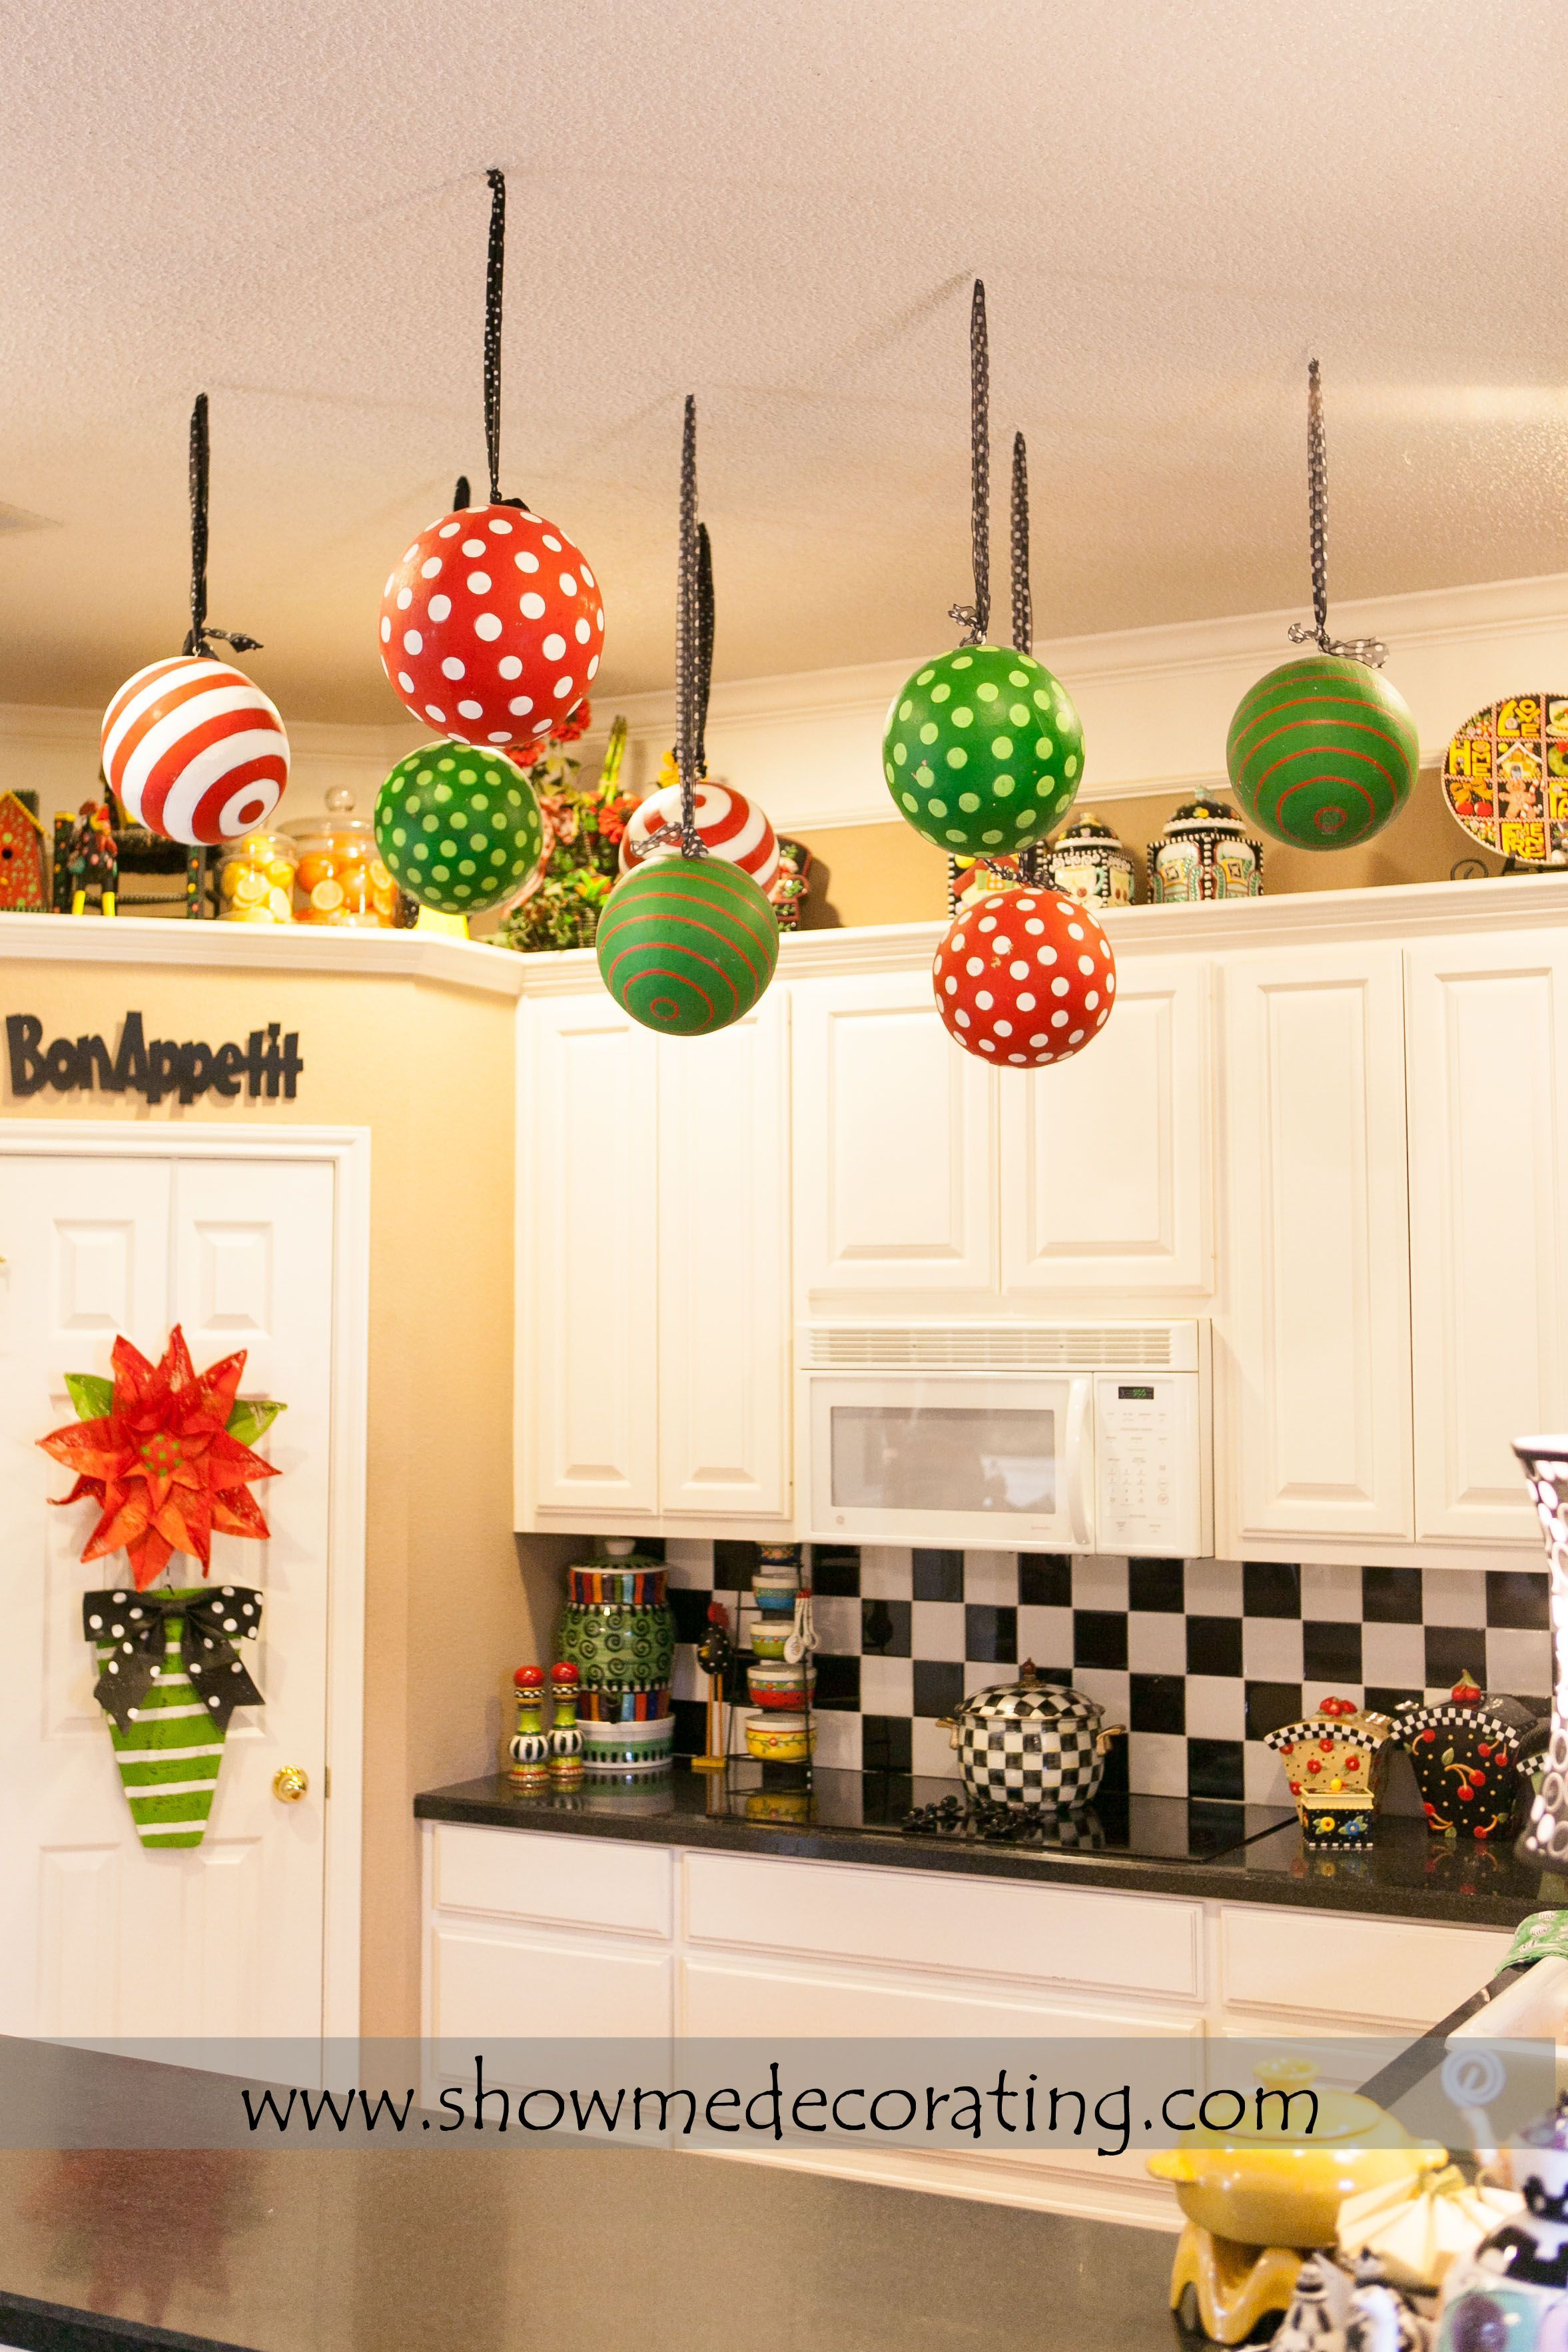 Christmas Decor Oversized Christmas Ornaments Tied With Coordinating Ribbon Suspending